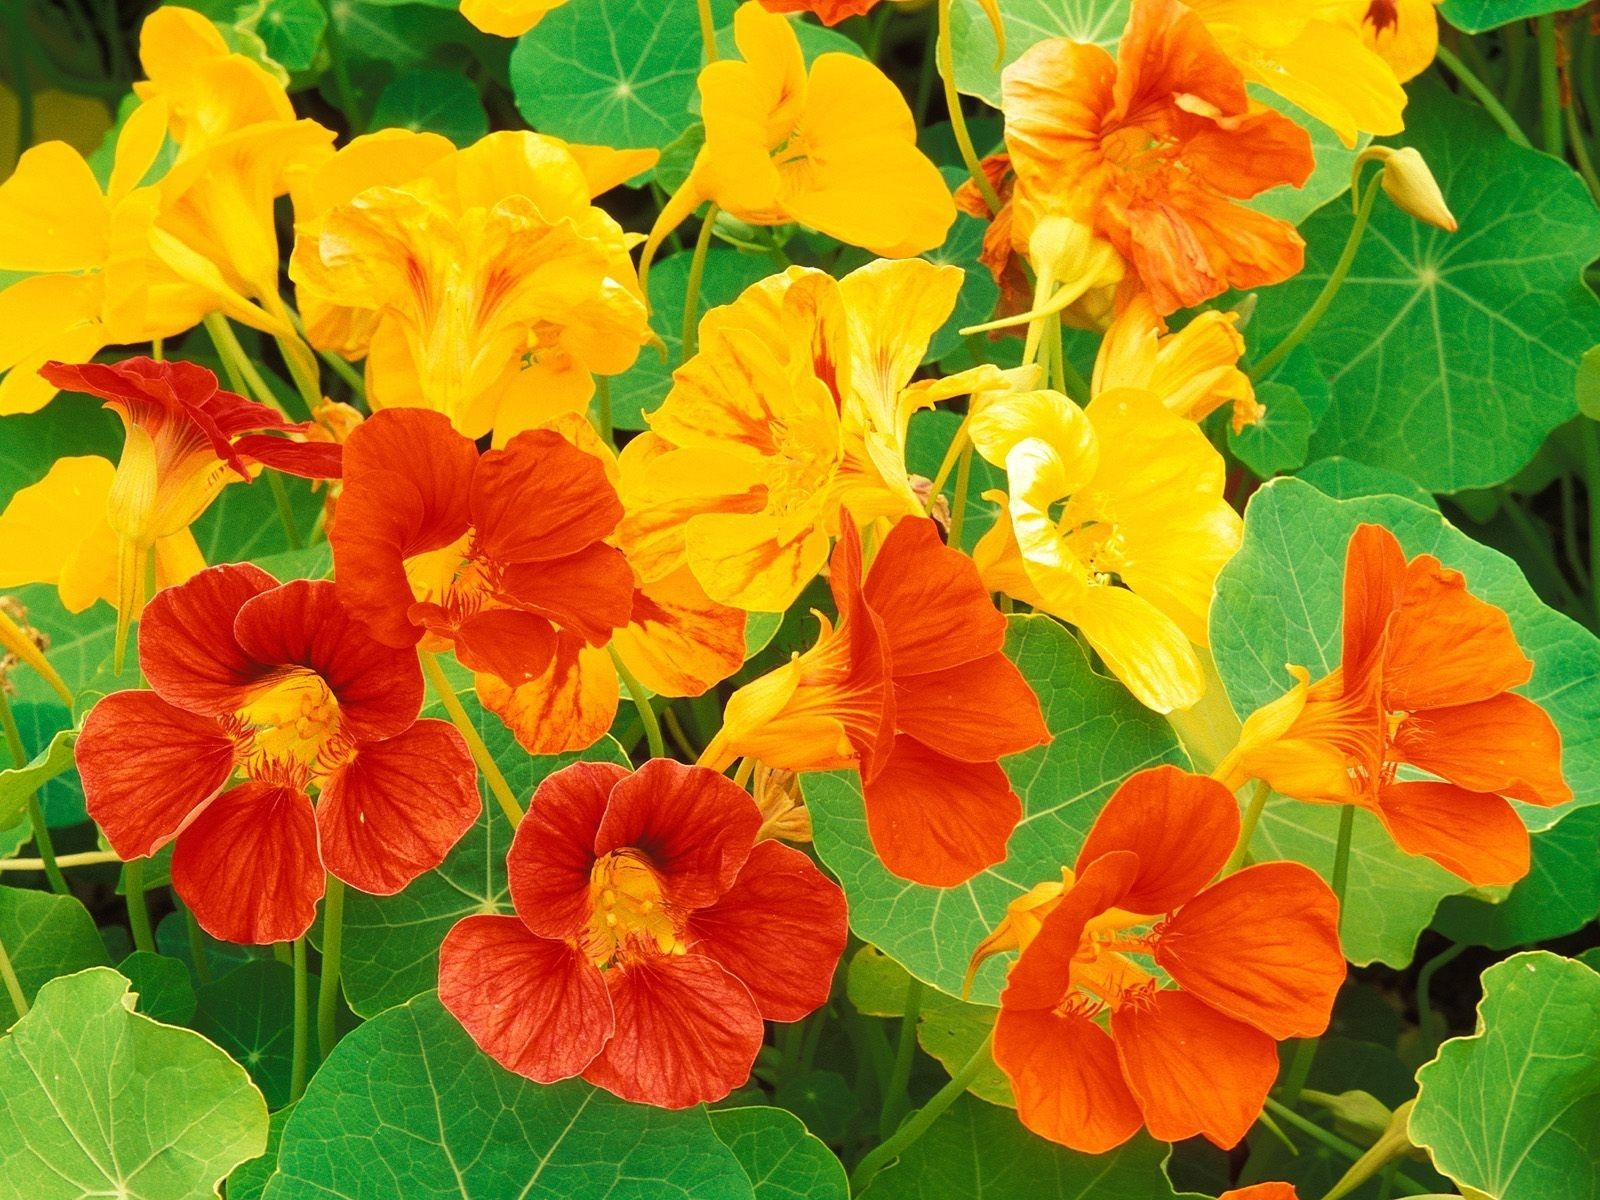 Nasturtium Another Edible Flower Plants Nasturtium Beautiful Flowers